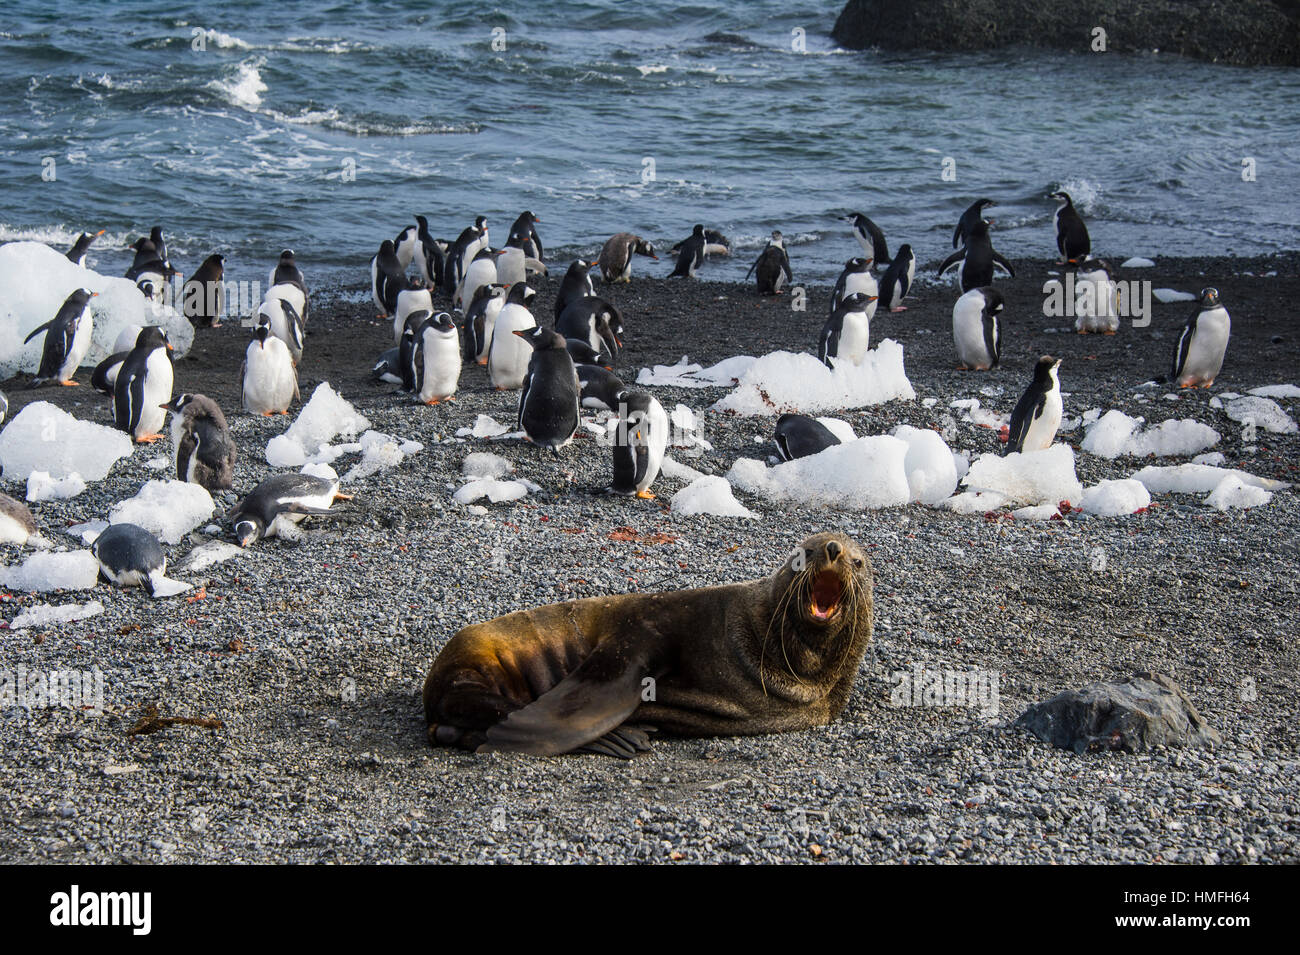 Antarctic fur sealin front of a colony of long-tailed gentoo penguins, Gourdin Island, Antarctica, Polar Regions - Stock Image